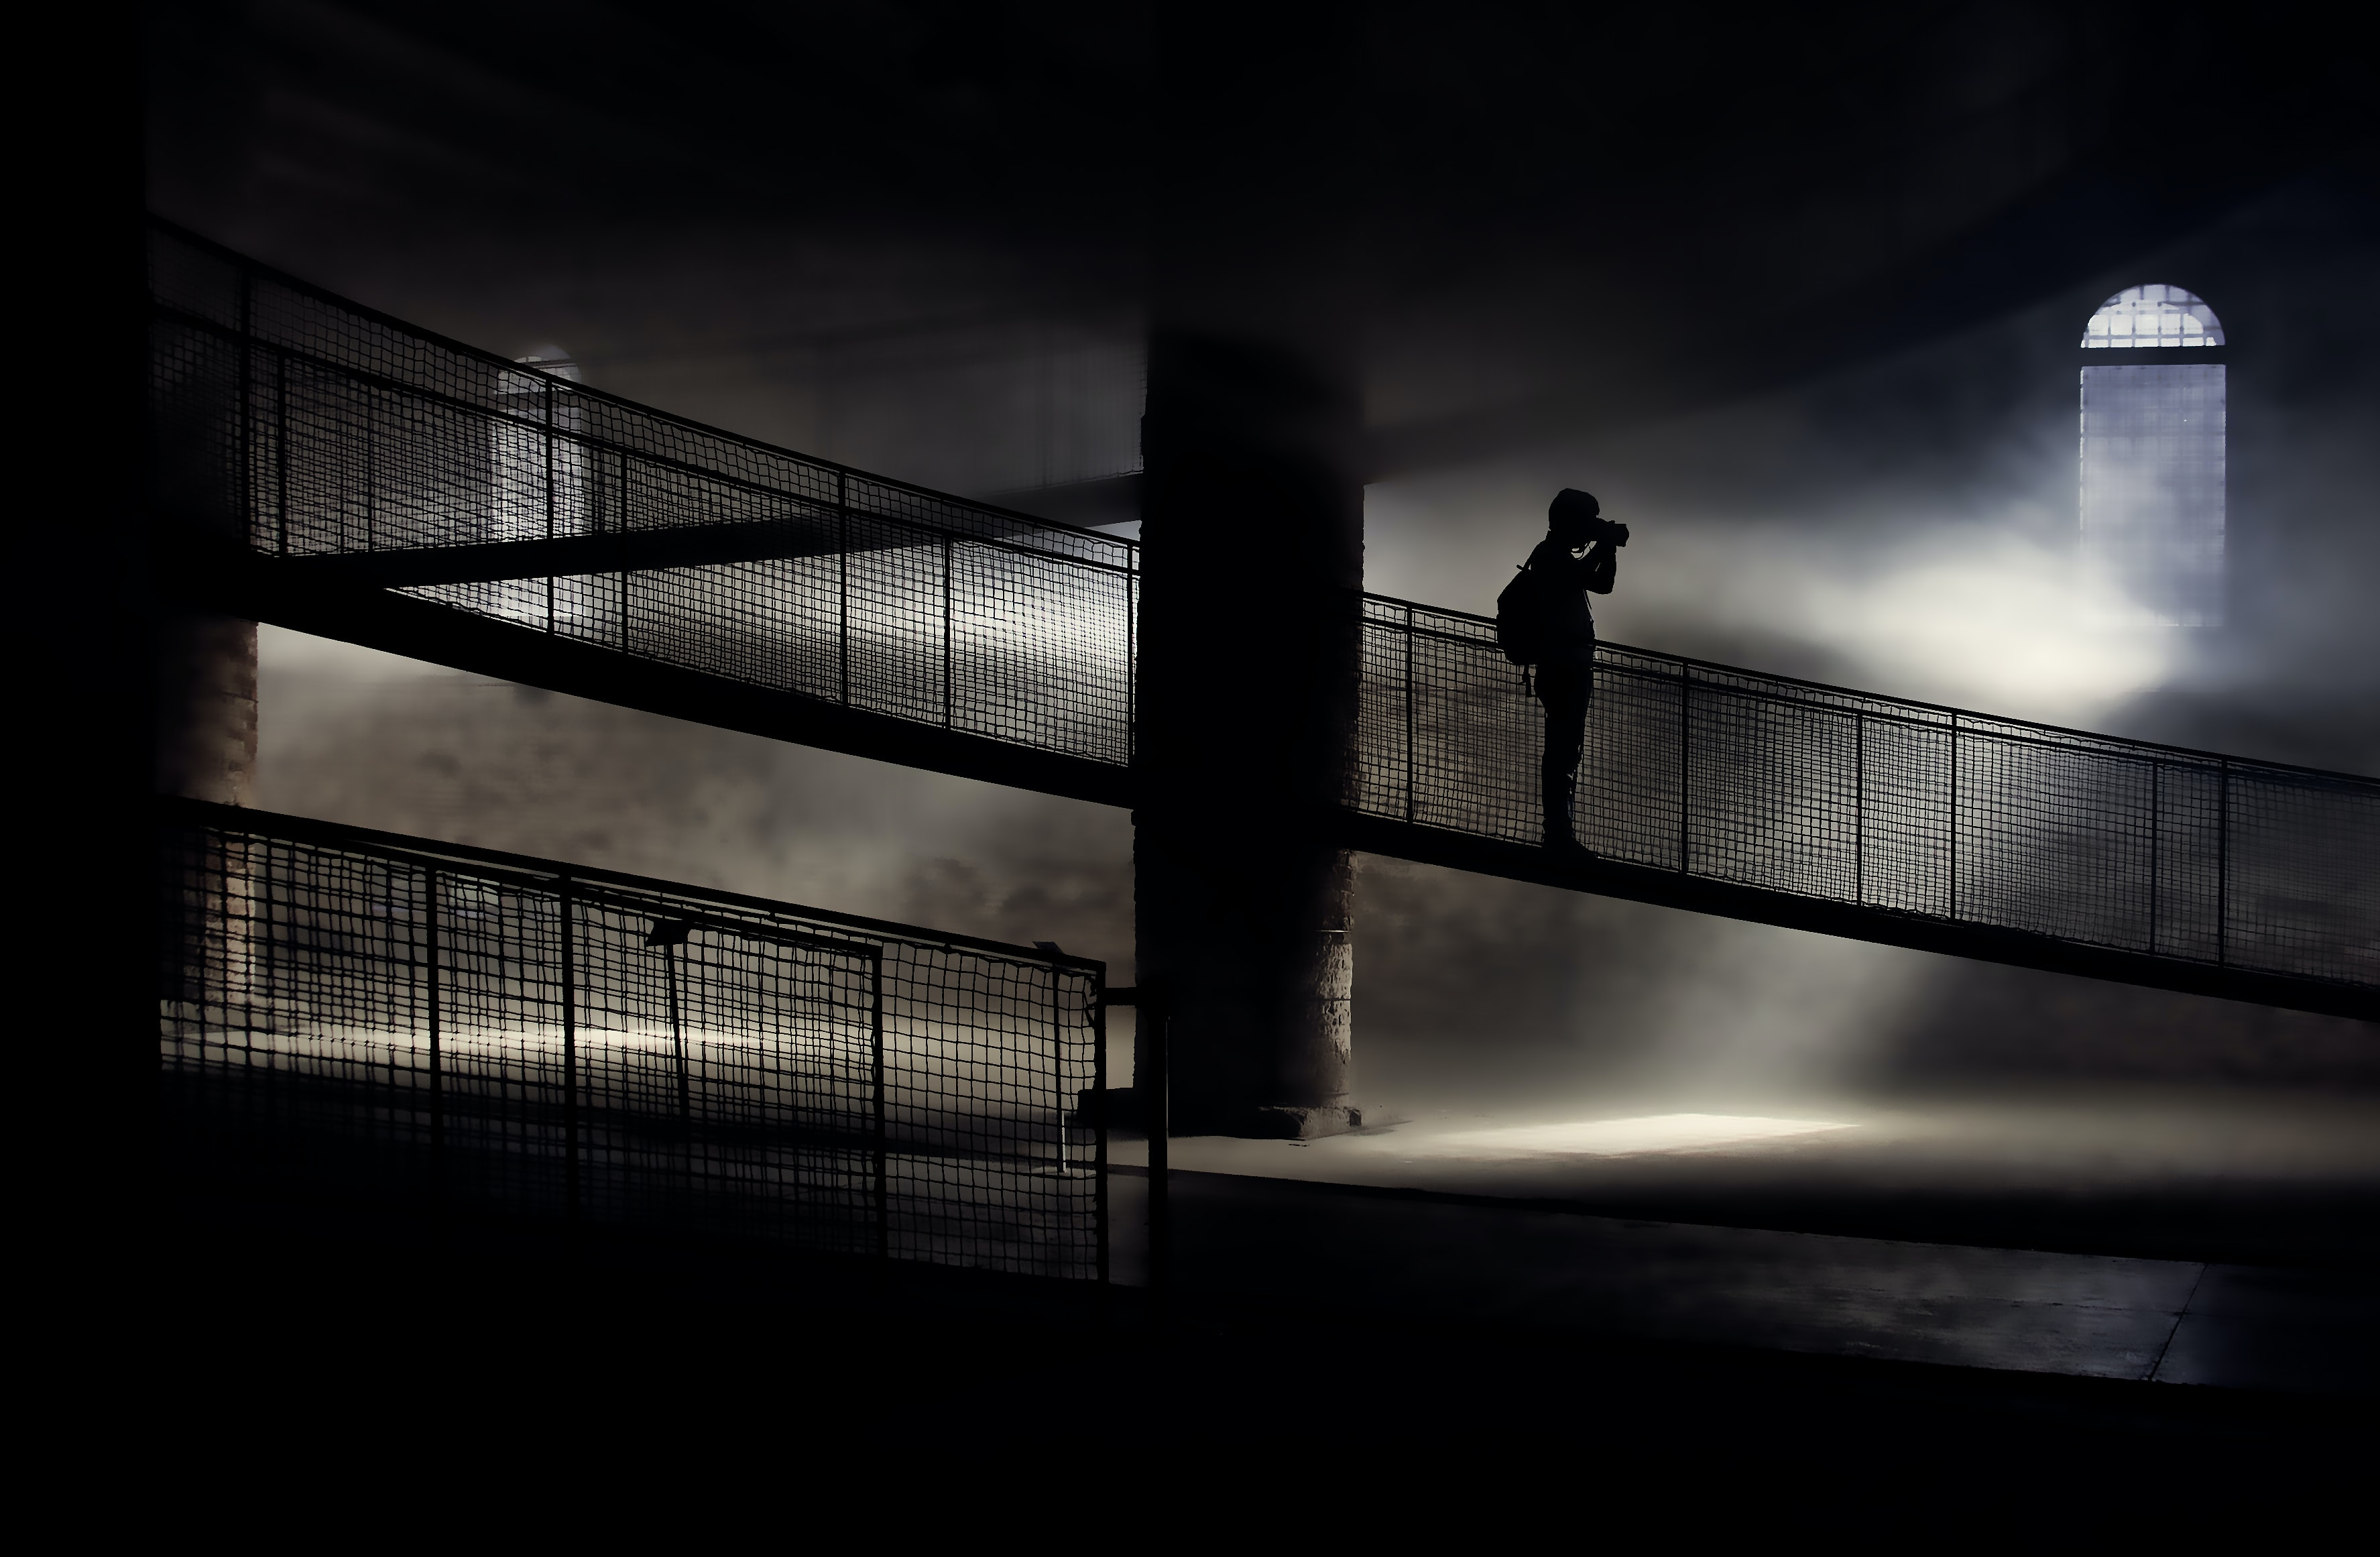 A silhouette of a photographer on a dark staircase in an old building